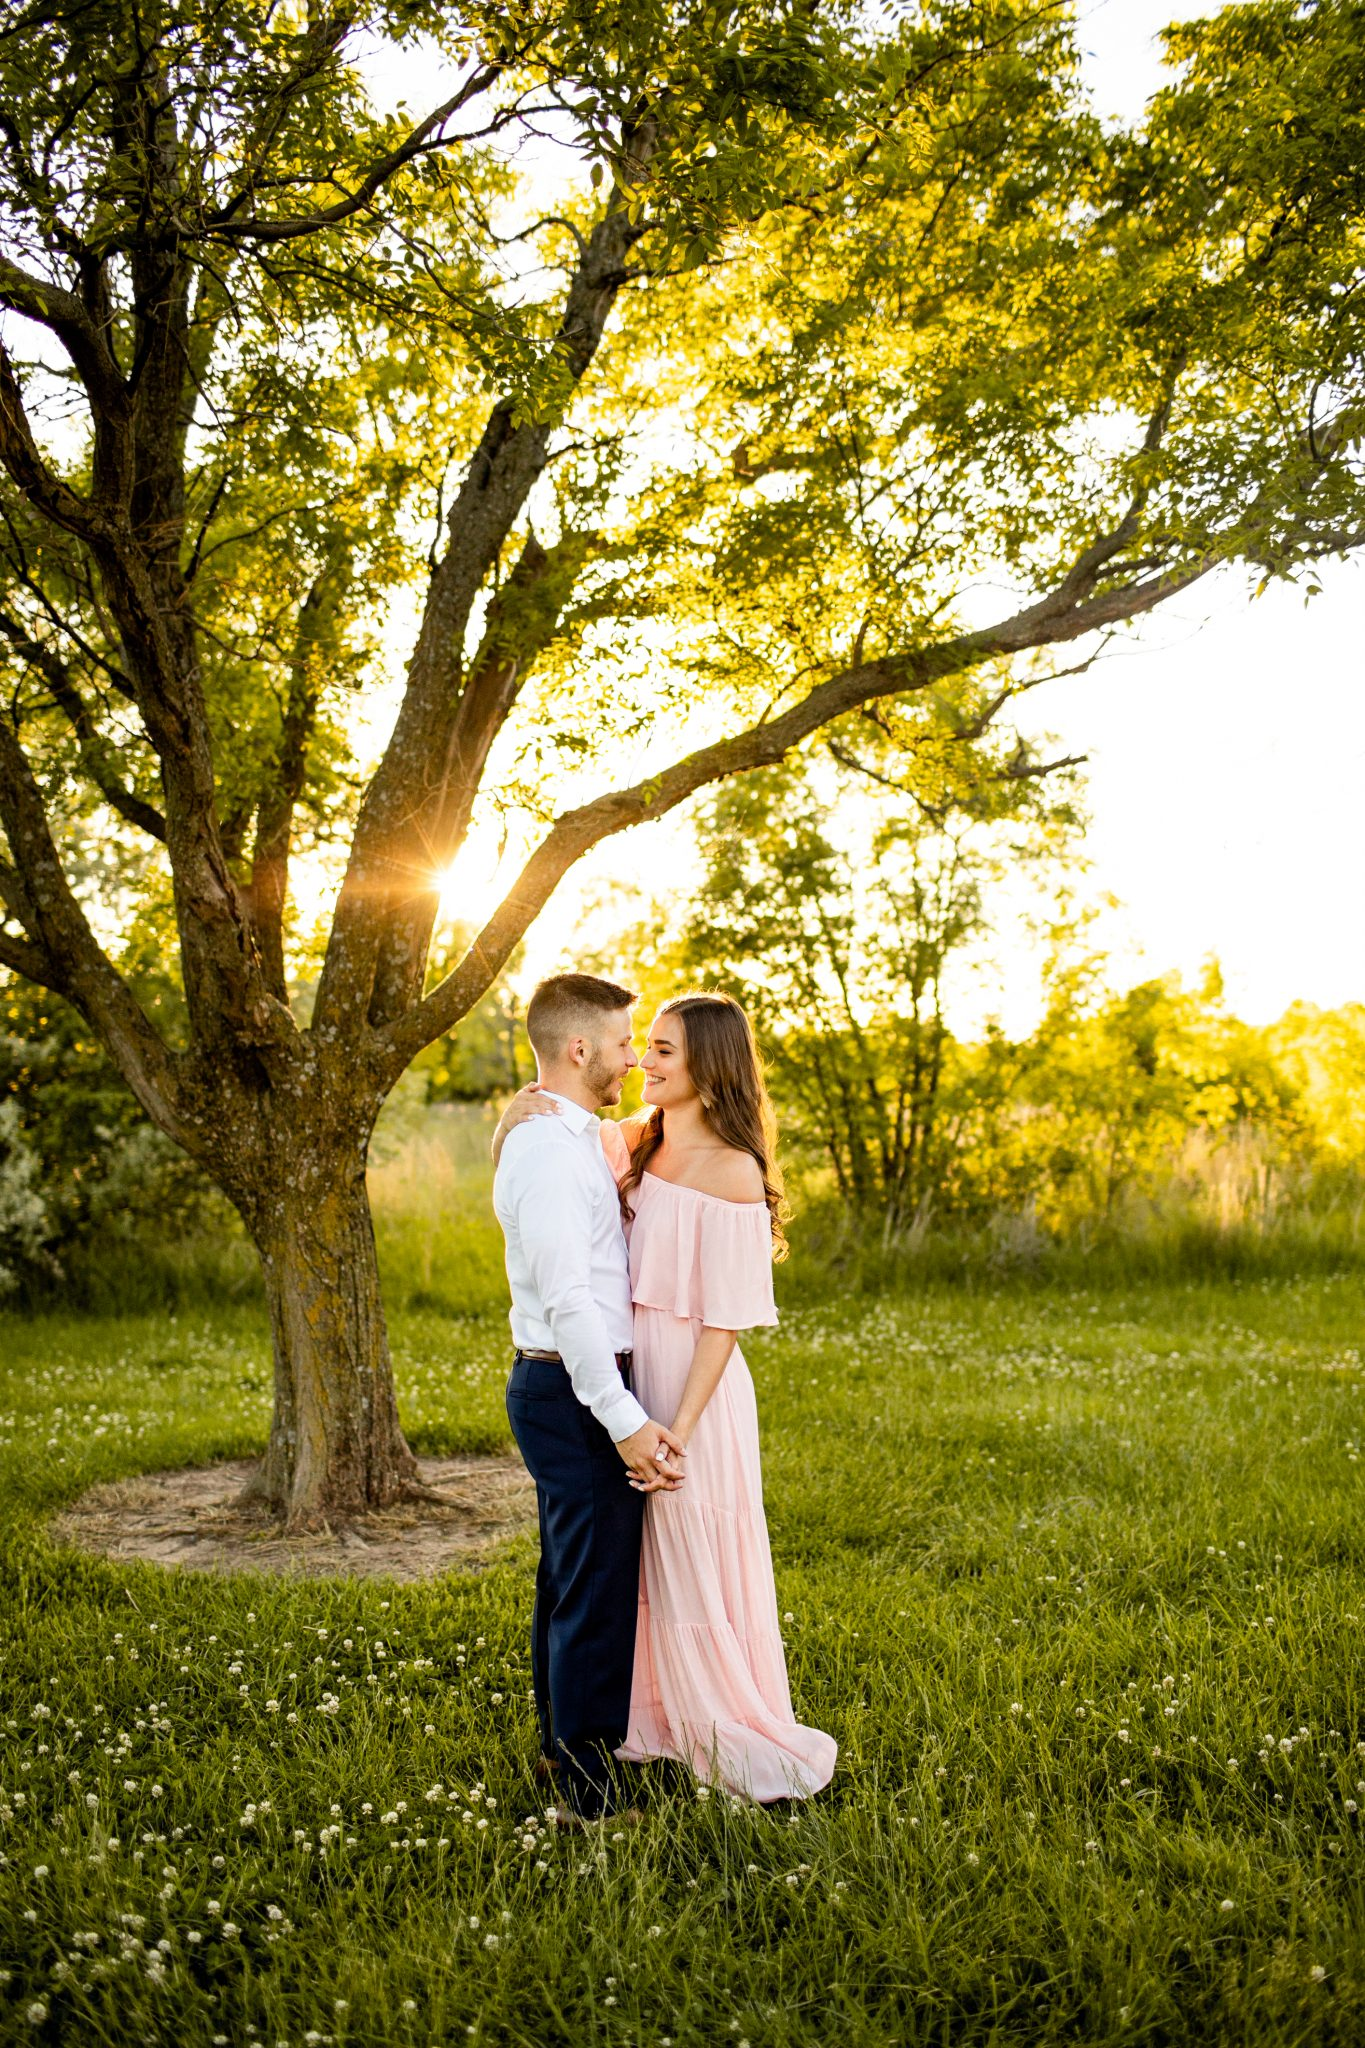 Brent-Natalie-Wichita-Engagement-Photos-225